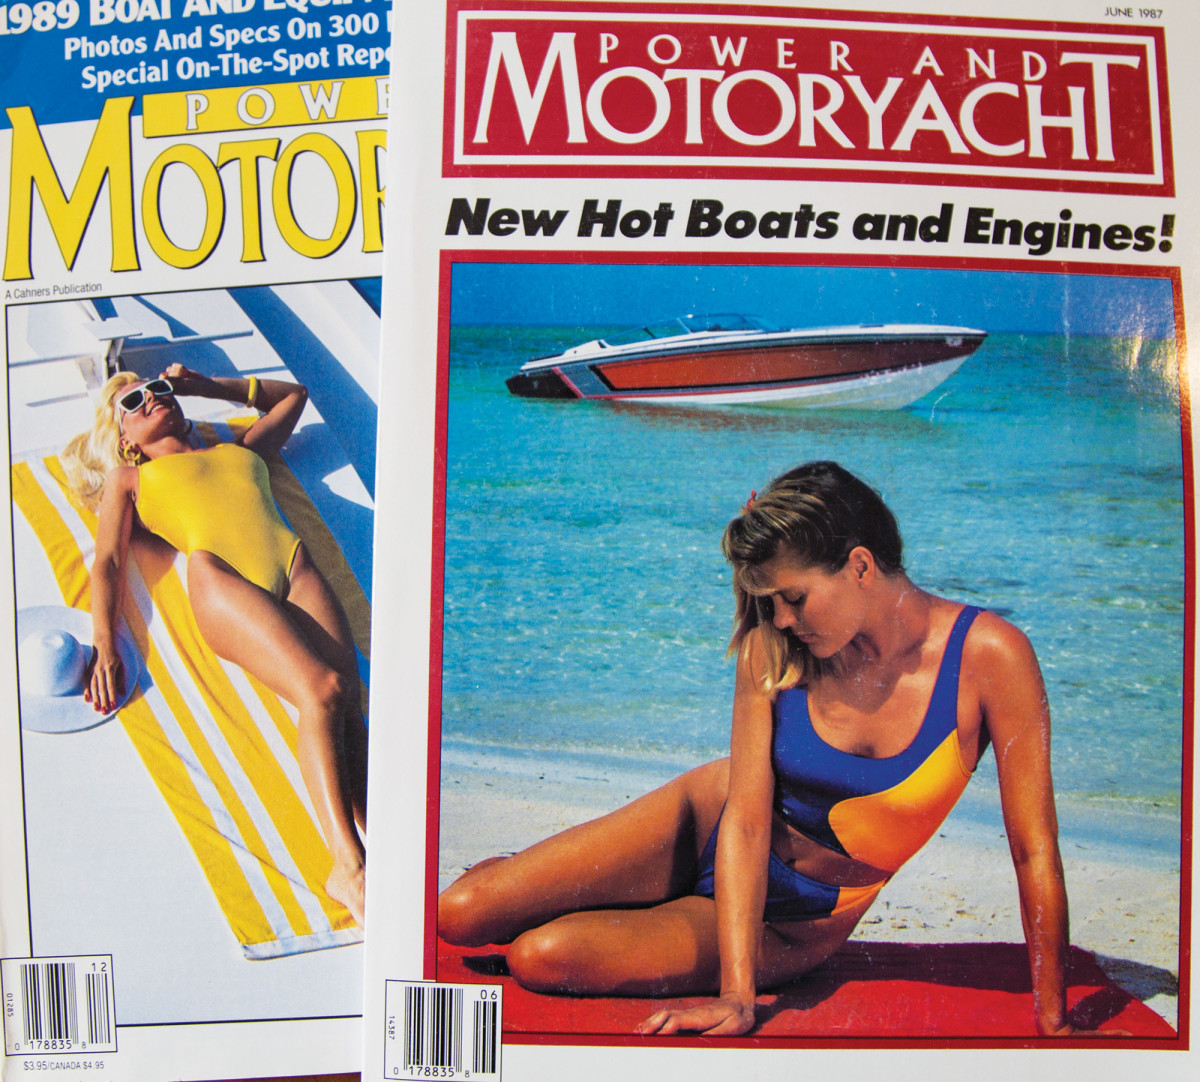 Old Power & Motoryacht covers